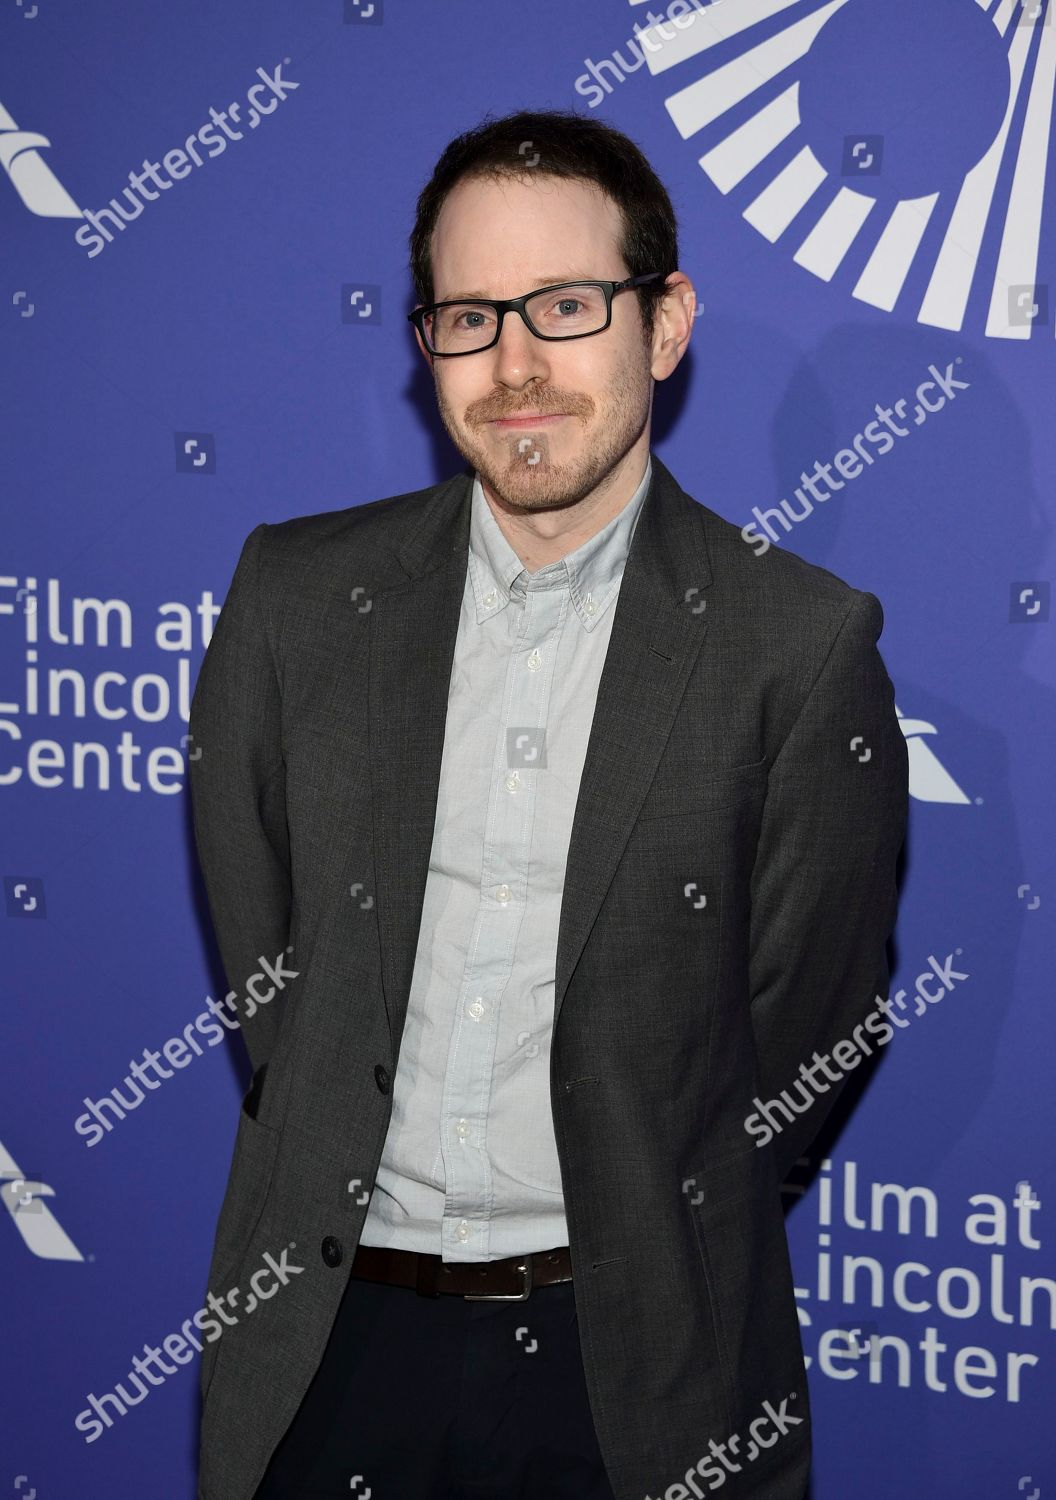 Ari Aster attends Film Society Lincoln Centers Editorial